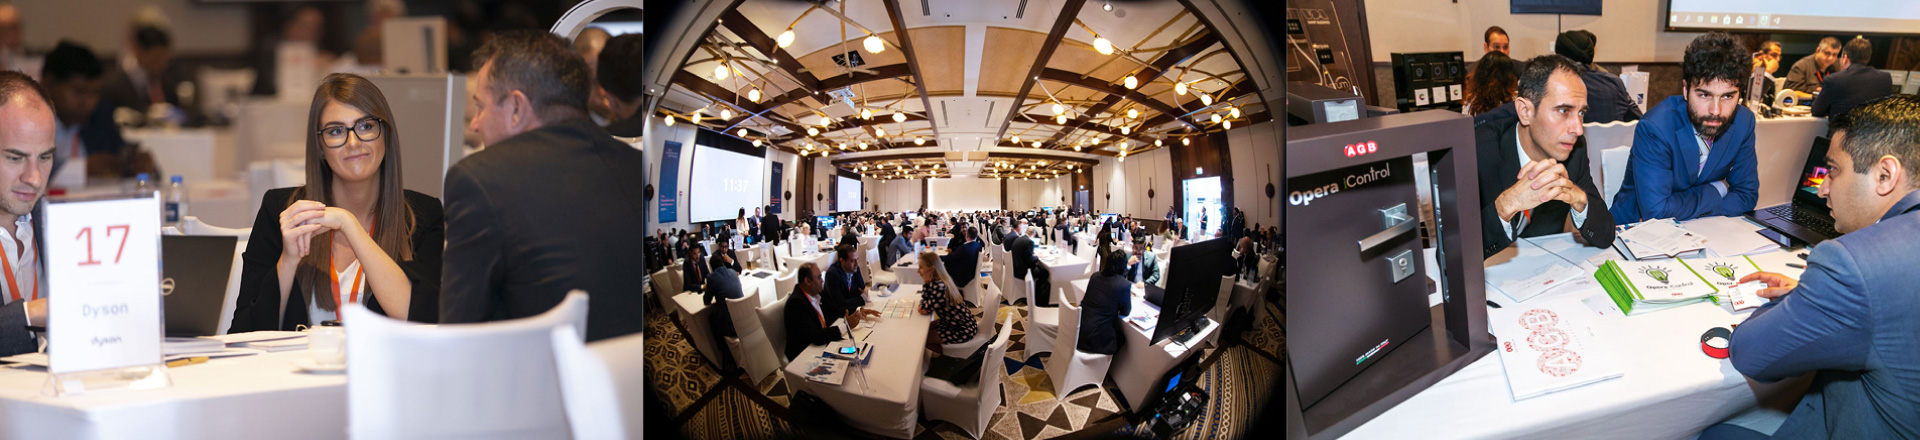 conference and boardroom automation in Dubai